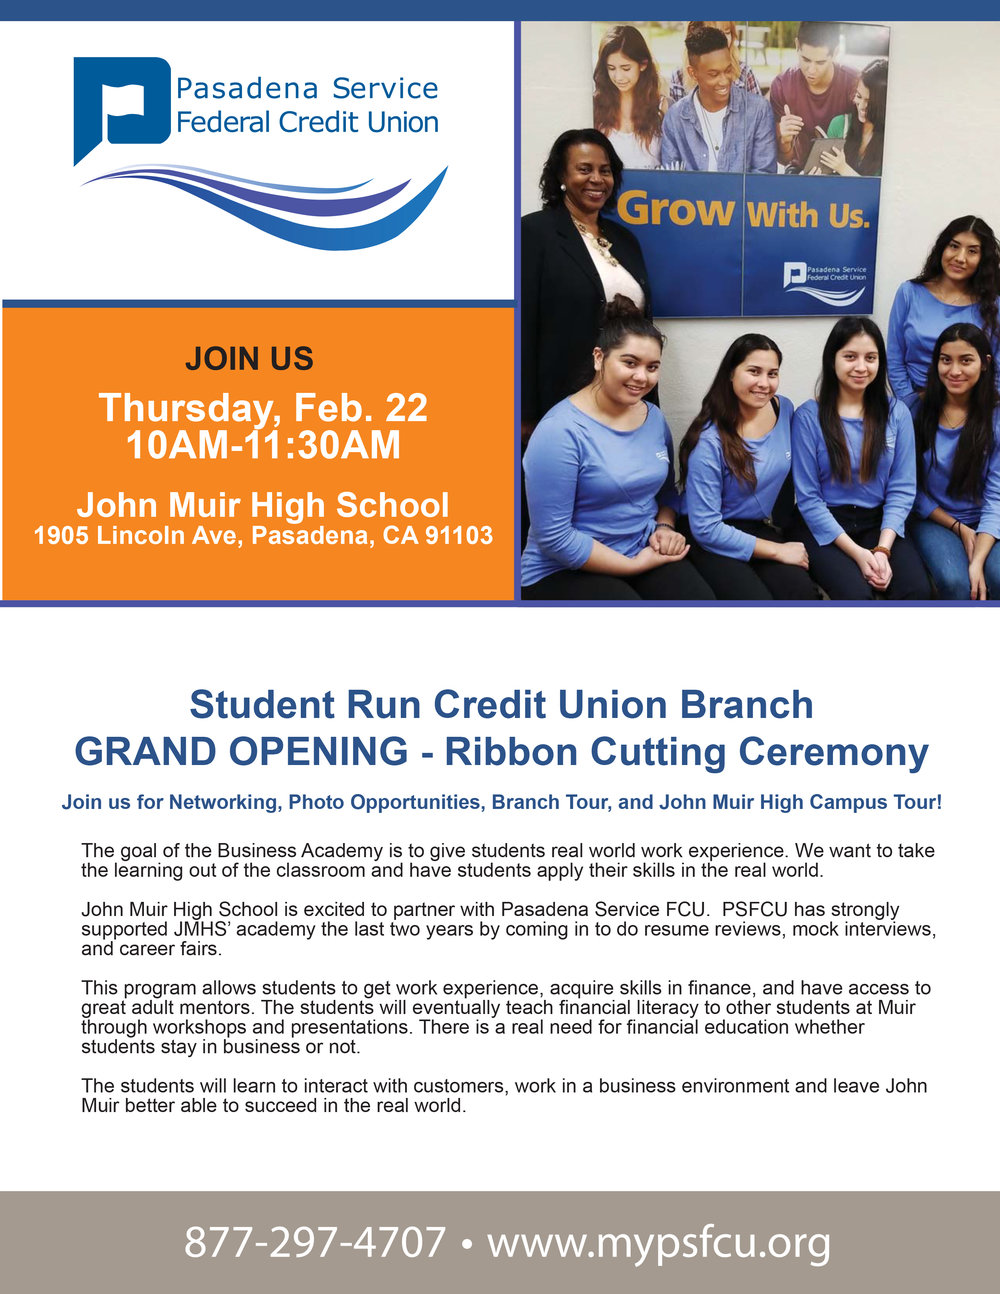 Pasadena Service Federal Credit Union Grand Opening- John Muir High School - February 22nd, 2018